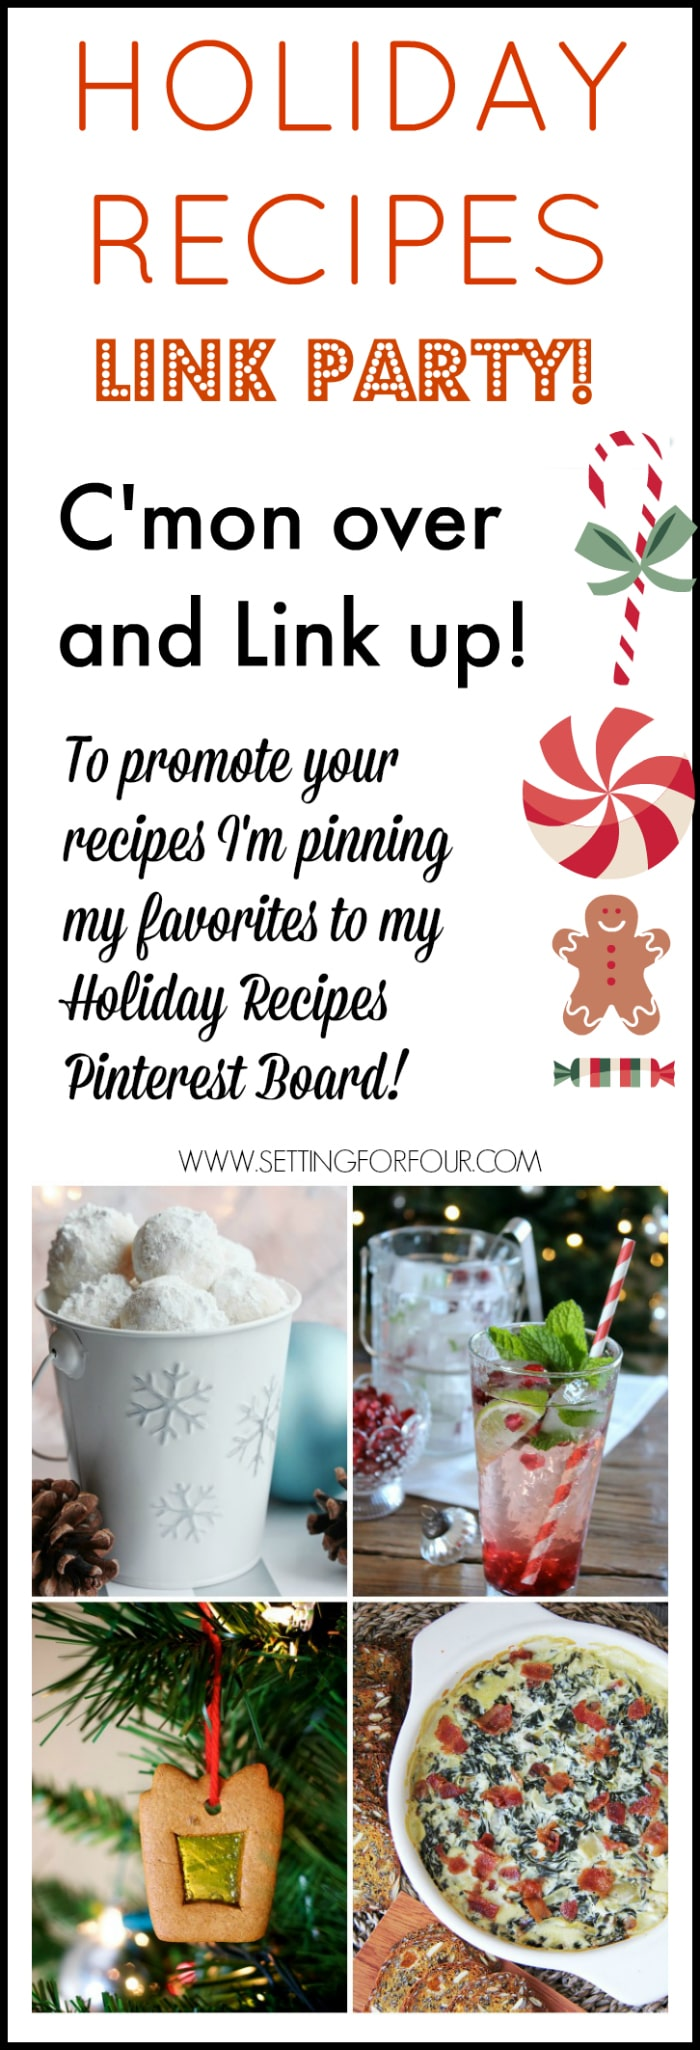 Share and link up to this fun Holiday Recipes Link Party! See and make lots of delicious Christmas recipes too! www.settingforfour.com